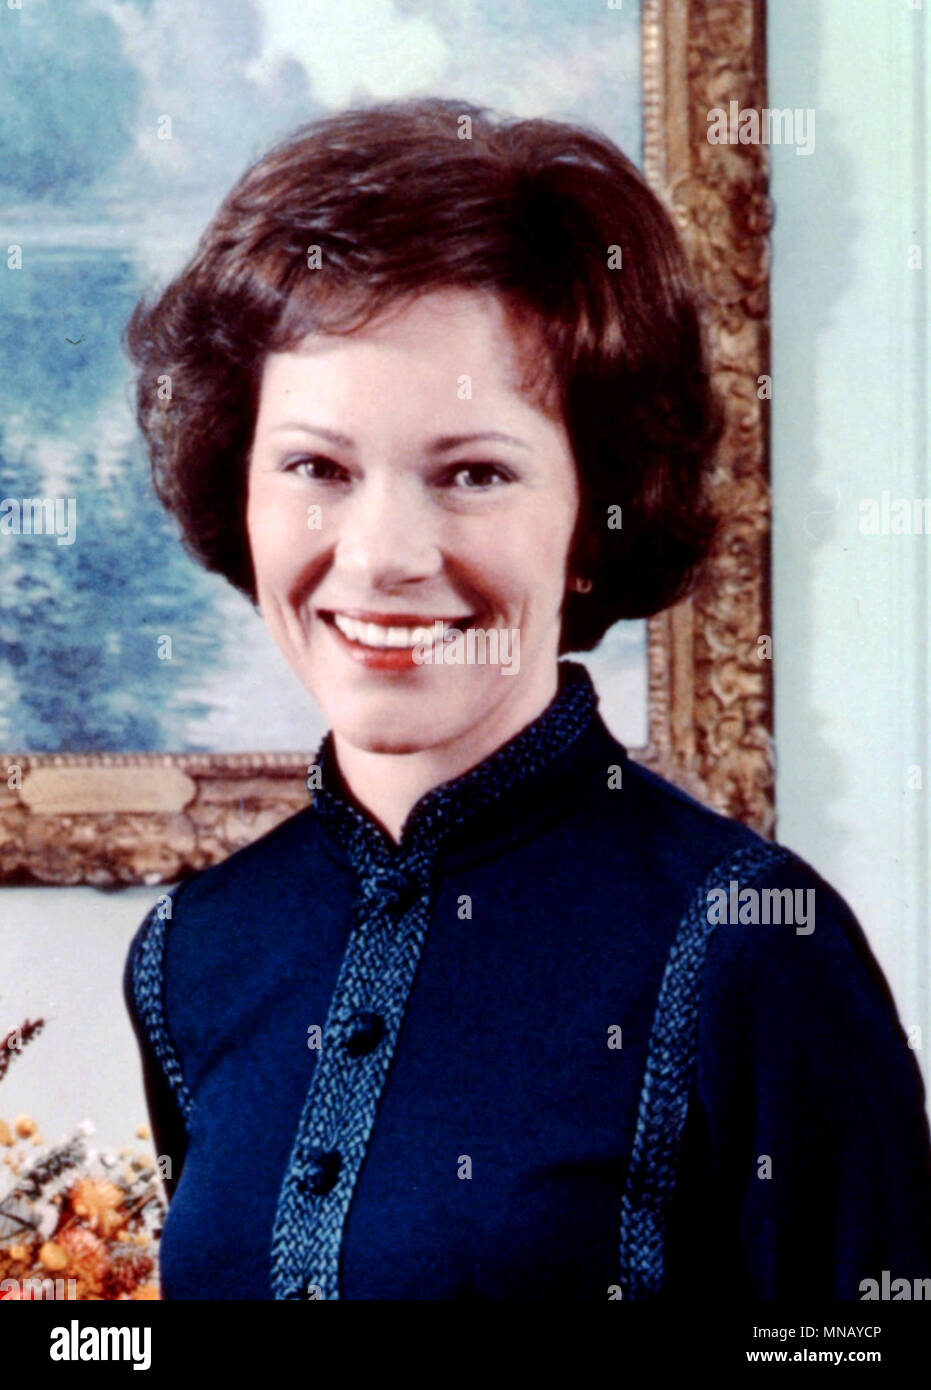 Rose Carter, Eleanor Rosalynn Carter, wife of the 39th President of the United States, Jimmy Carter, and served as the First Lady of the United States from 1977 to 1981 - Stock Image